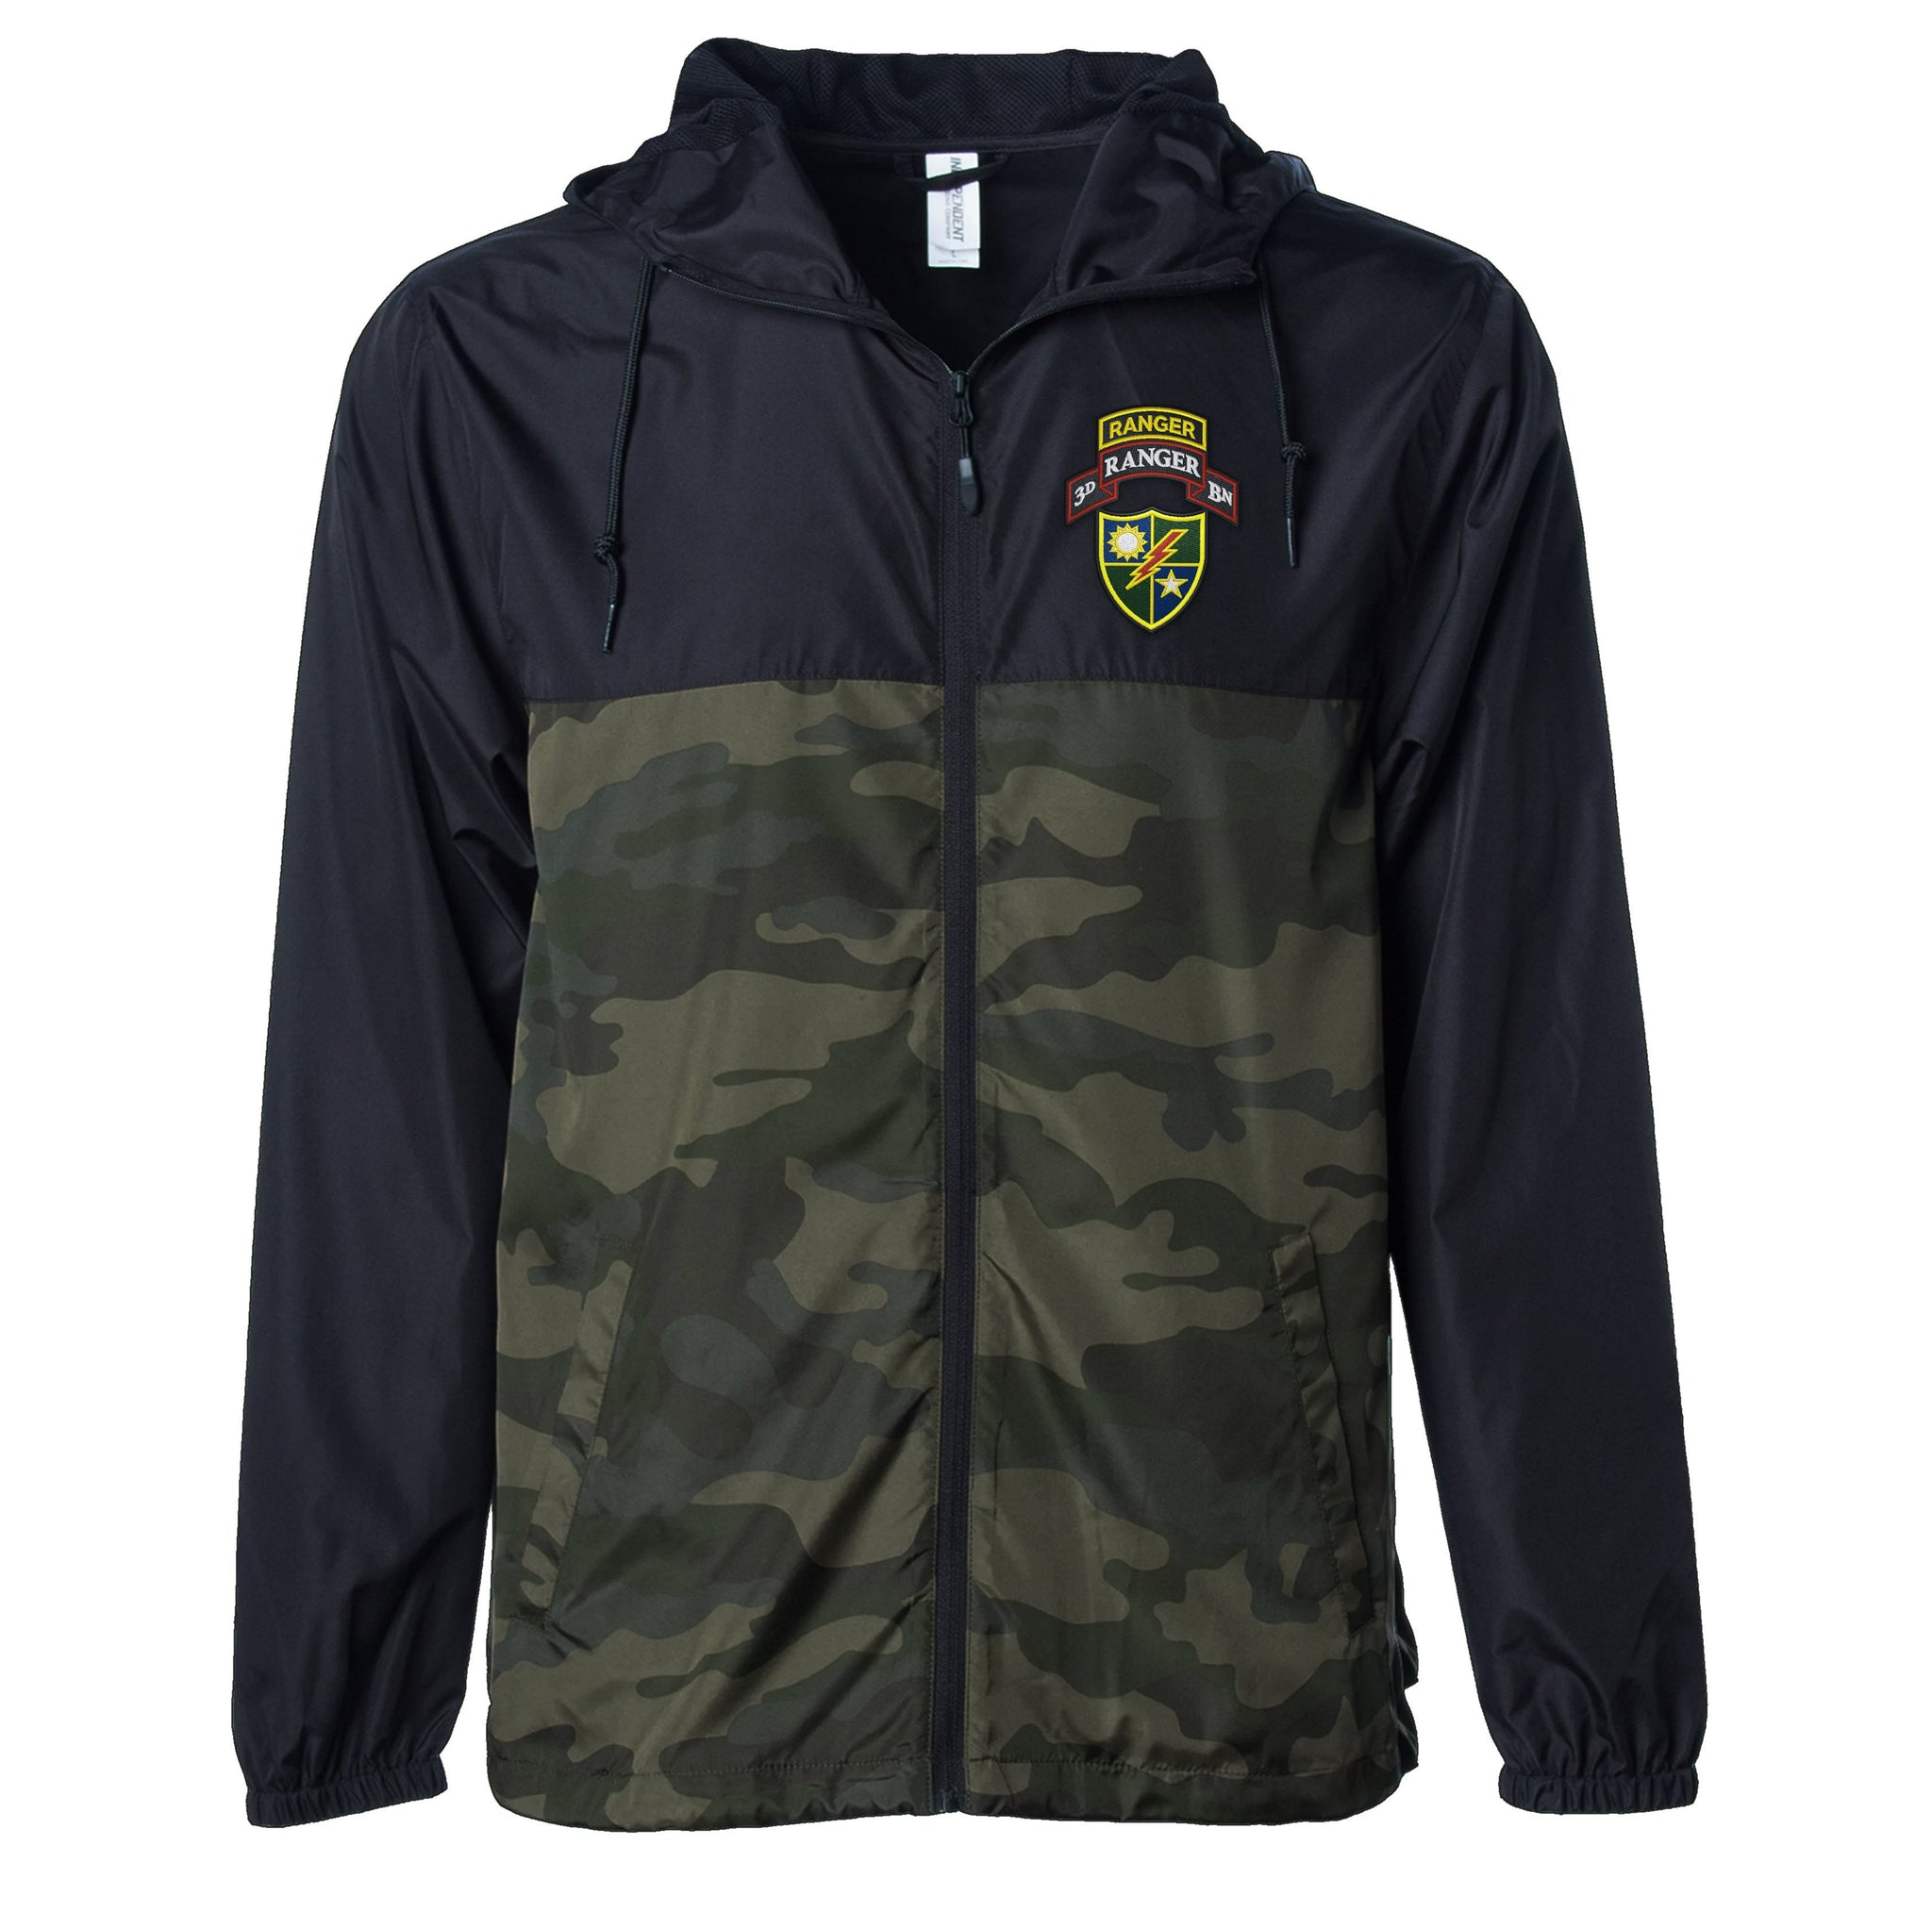 Ranger Lightweight Windbreaker